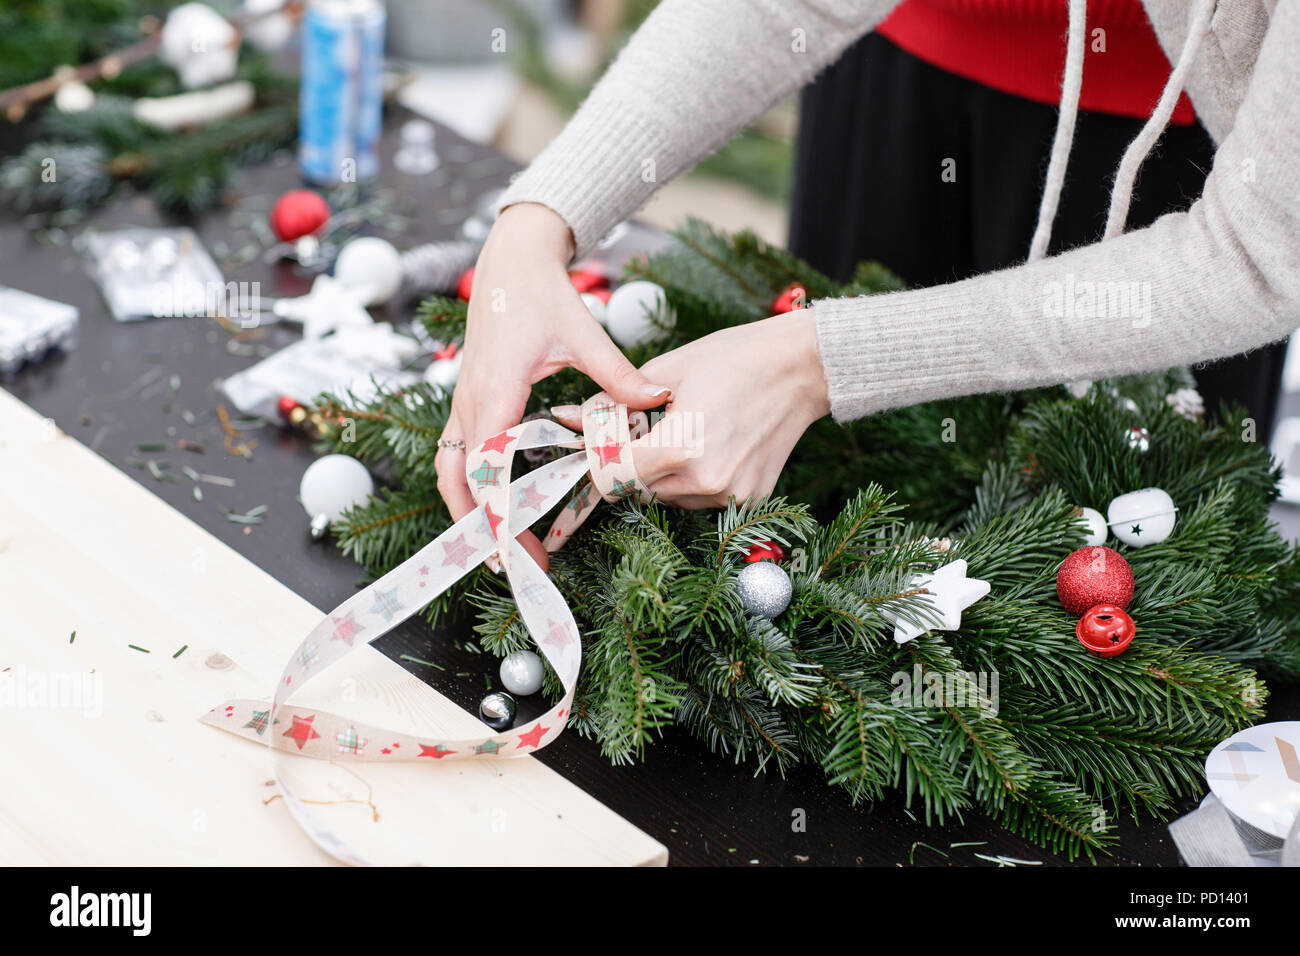 woman tying a bow ribbon decorated a christmas wreath attaches toys and decor with glue gun hands close up master class on making decorative ornaments - How To Tie Decorative Bows For Christmas Decor